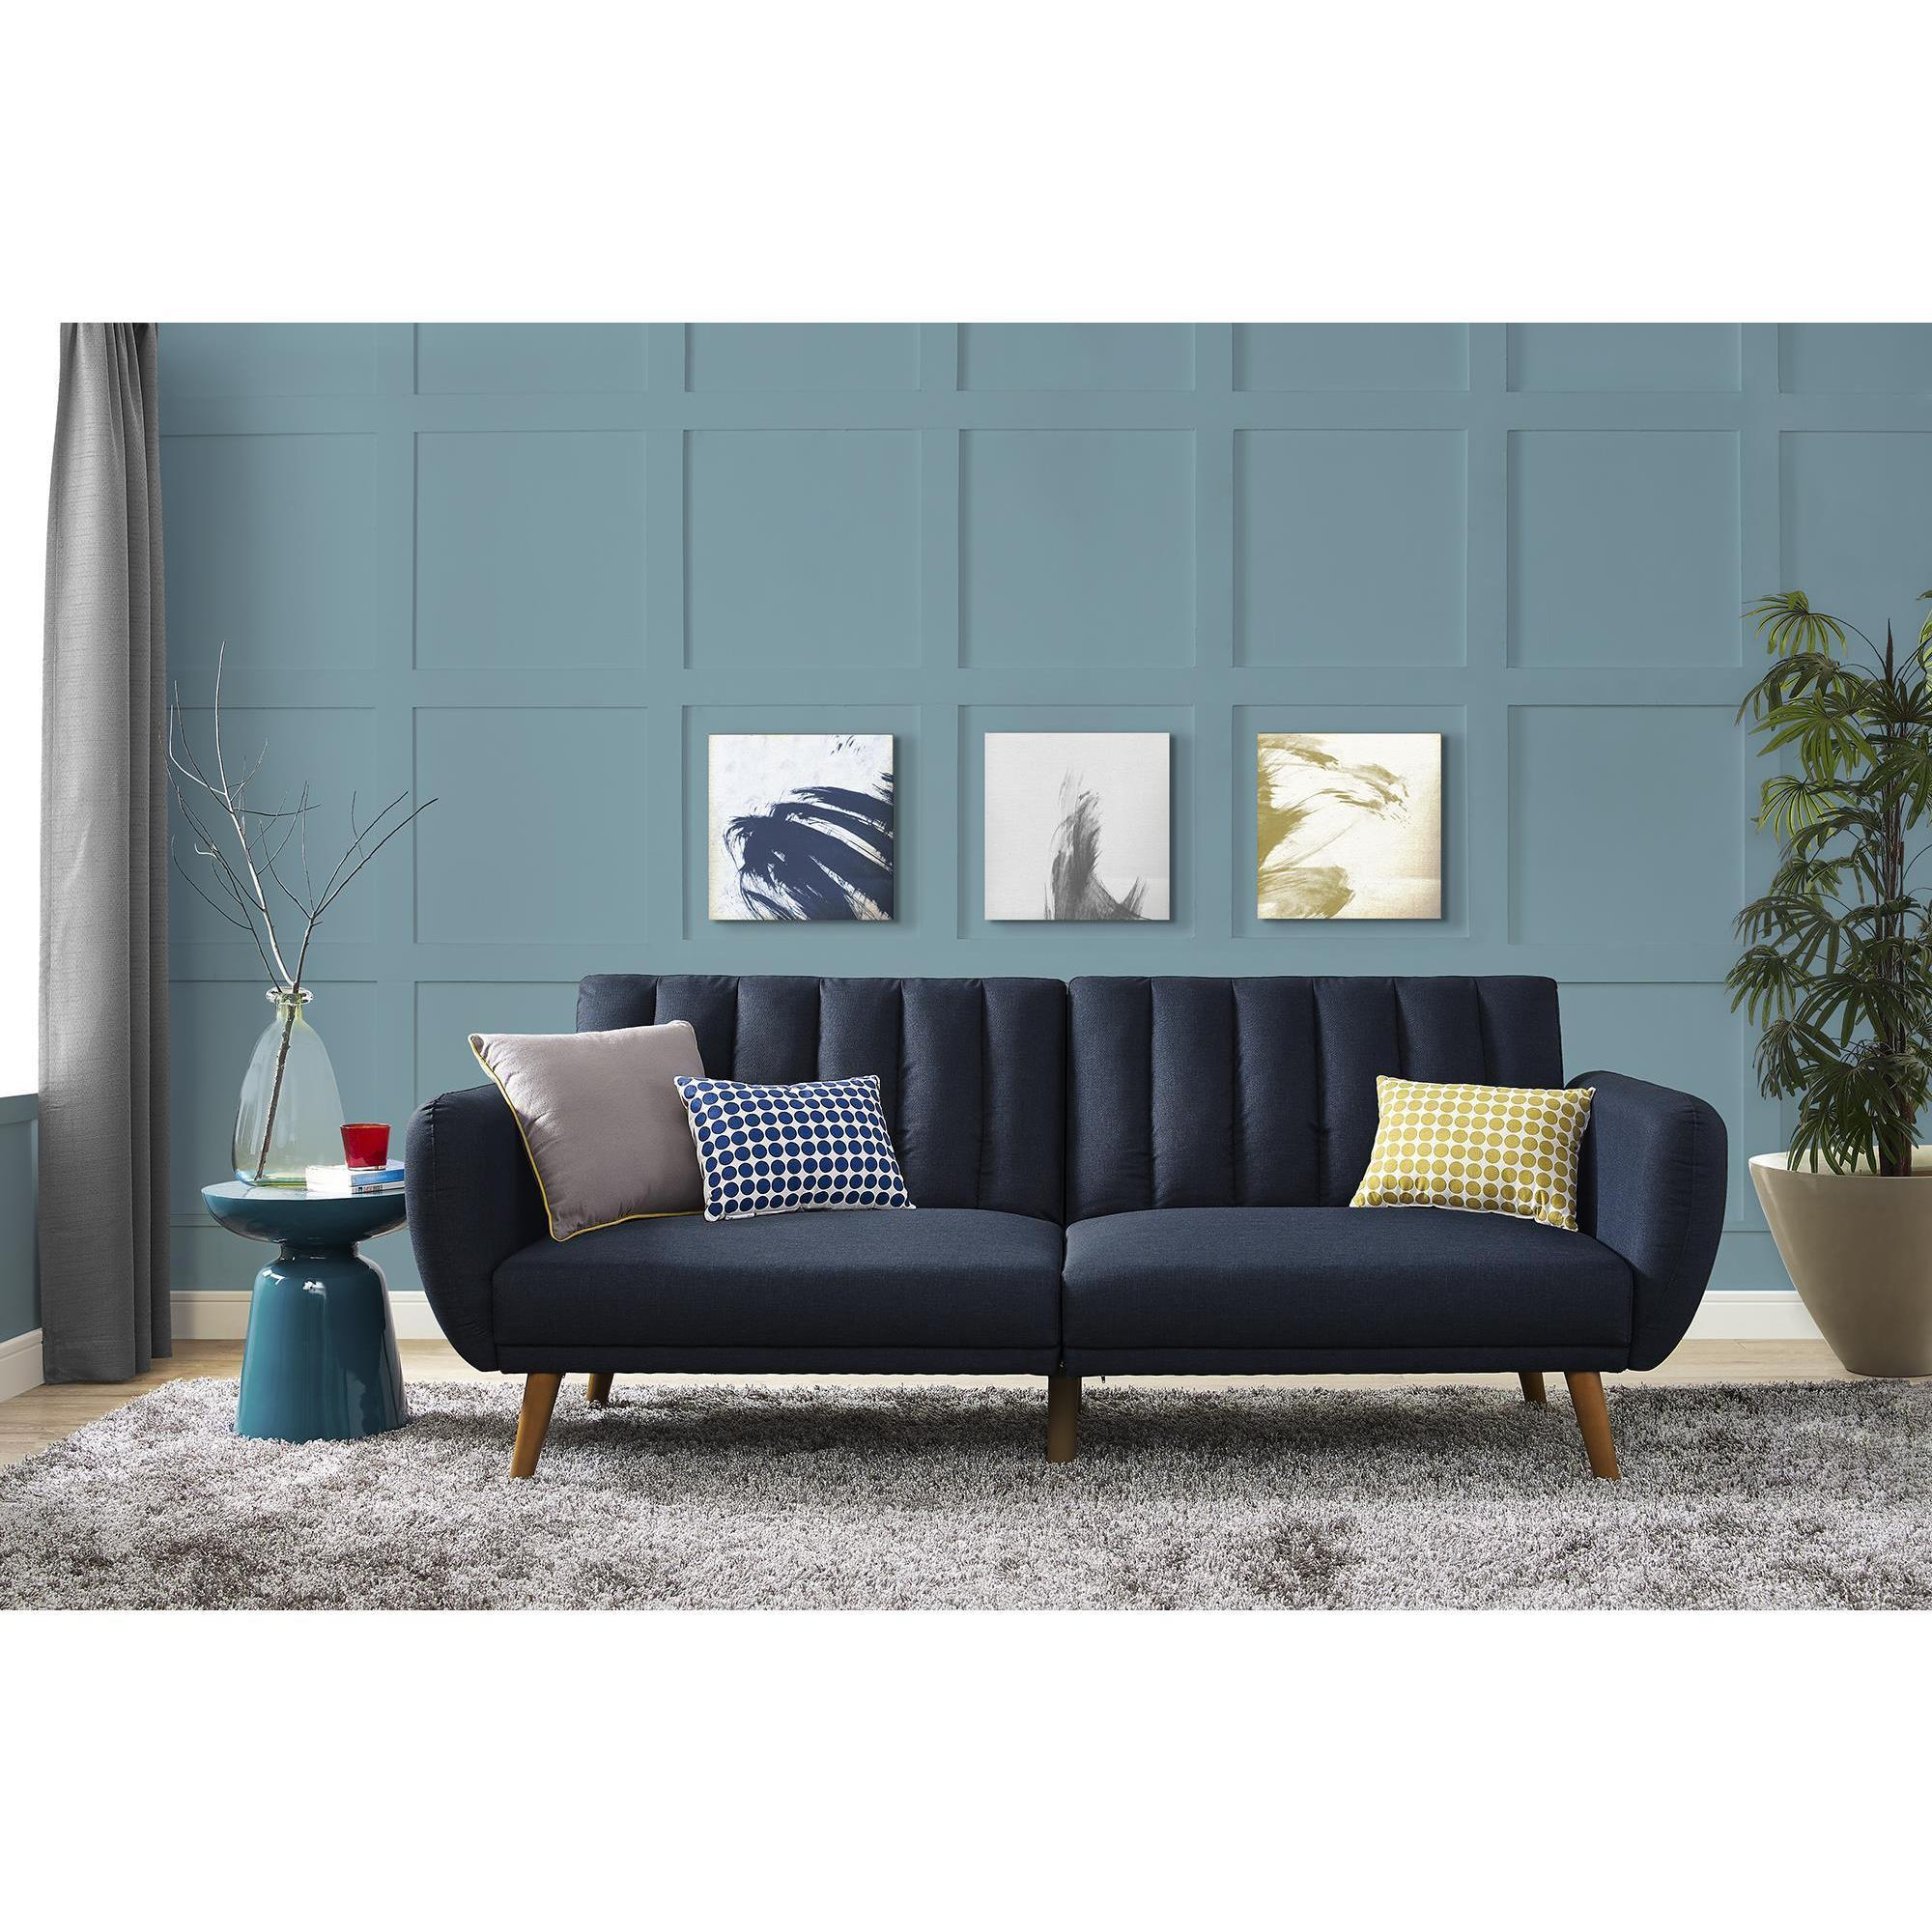 buy sofas couches sale online at overstock com our best living rh overstock com sofas and couches for sale in hamilton ontario sofas and couches for sale in pretoria